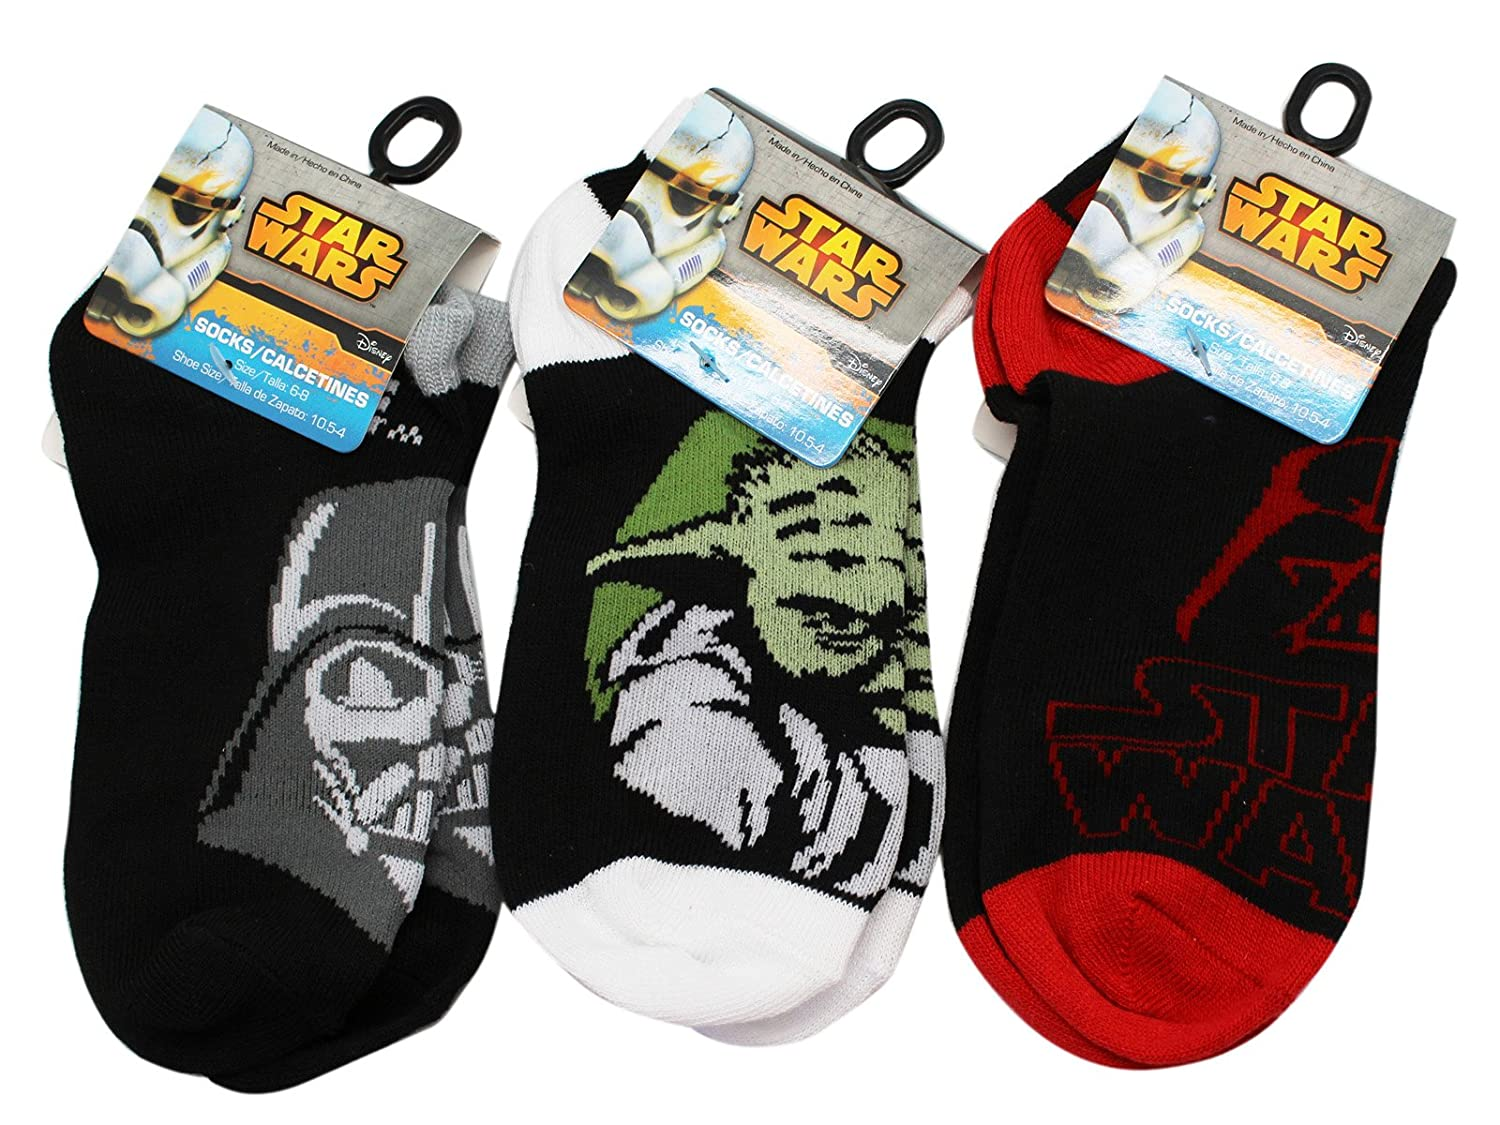 Amazon.com: Star Wars Assorted Color Size 6-8 Kids Sock Set (3 Pairs Chosen at Random): Clothing